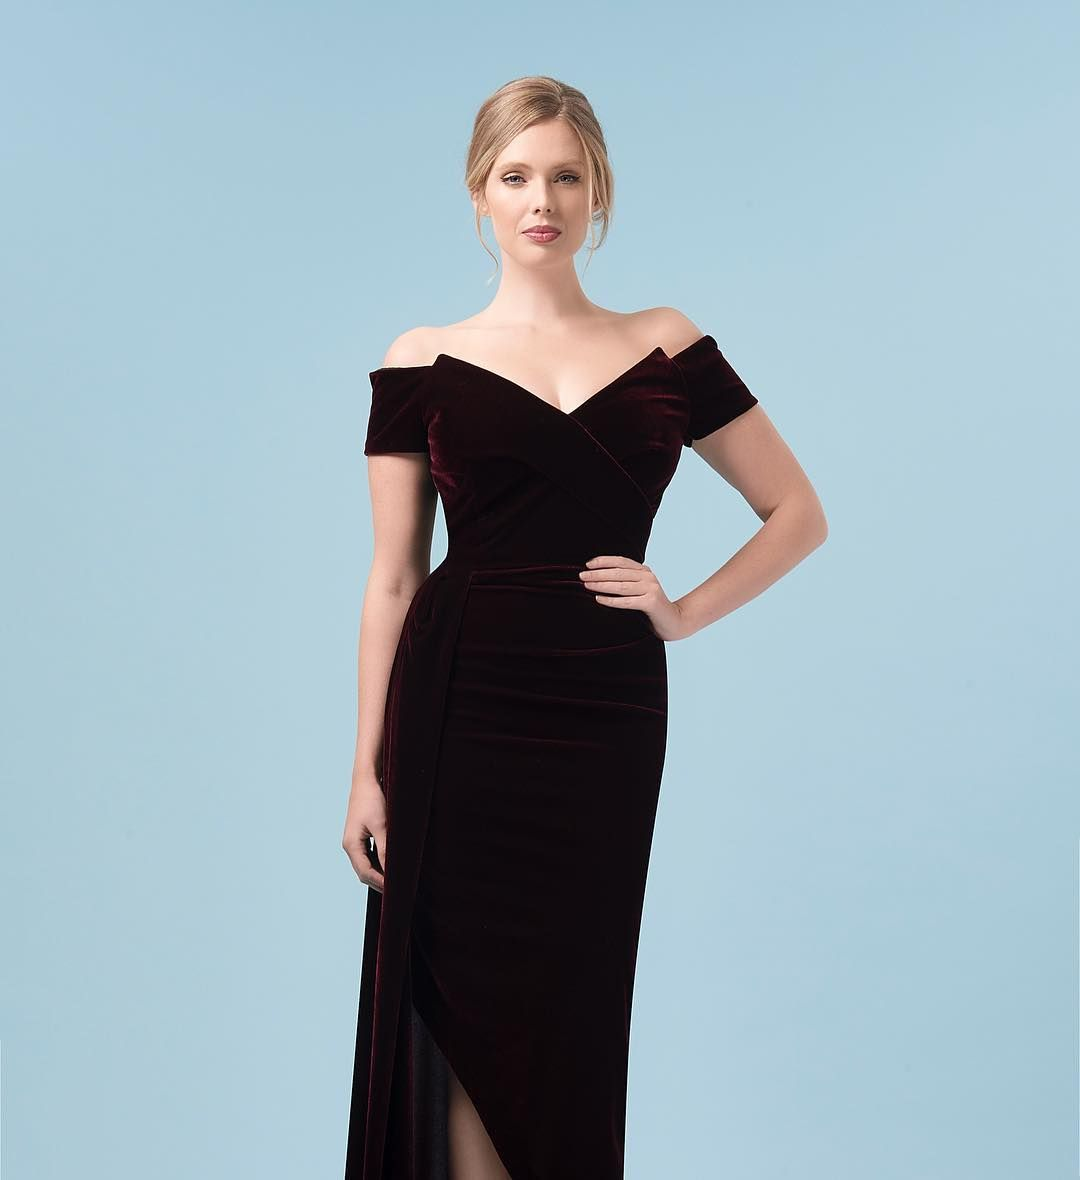 Fine Dresses For Company Christmas Party Images - Wedding Ideas ...